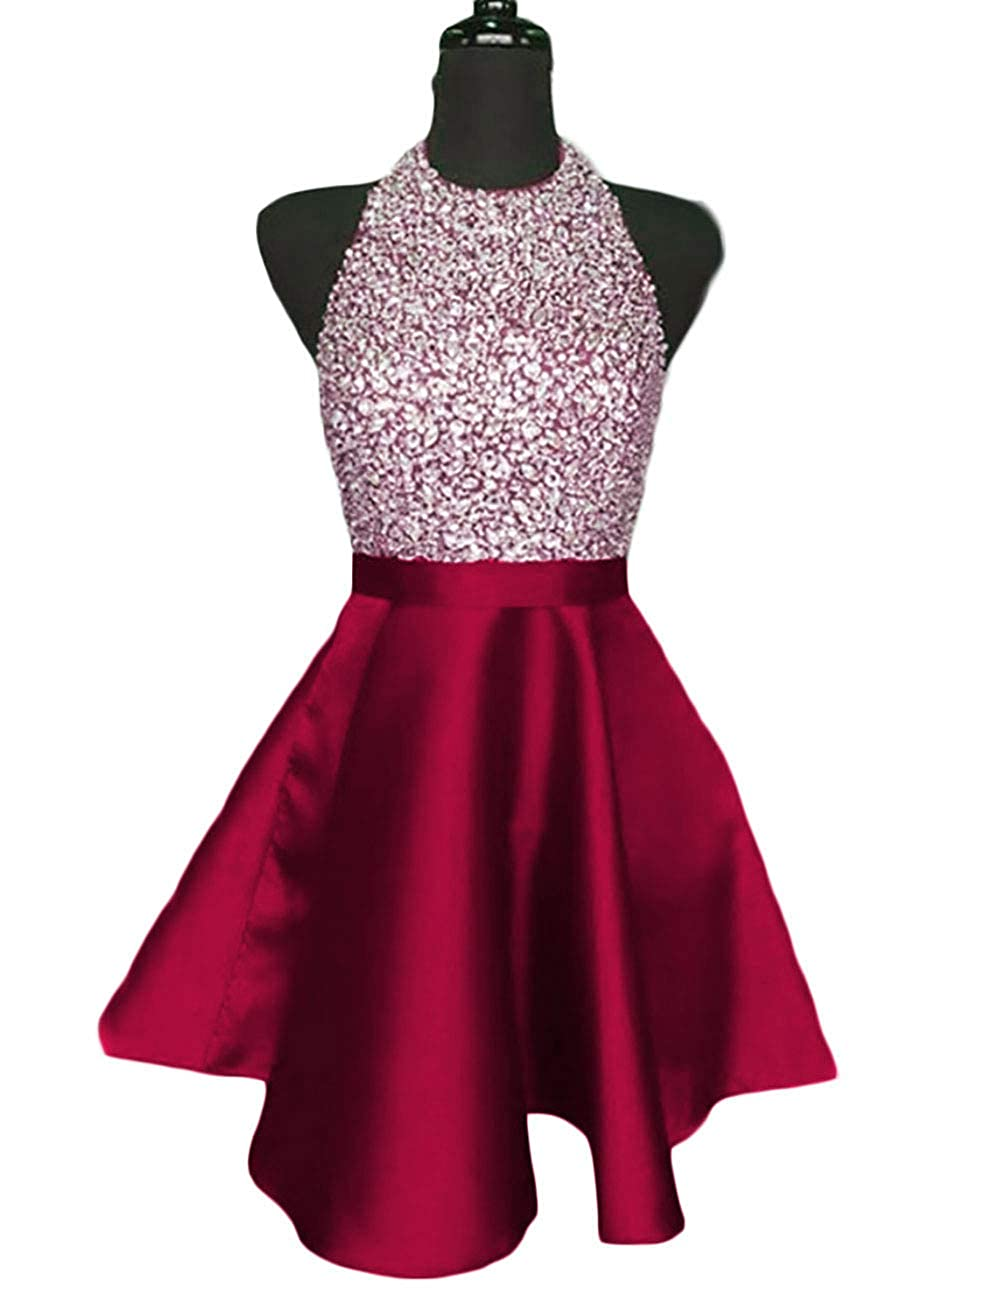 3dbbff01863 2018 Girl s Hoco Dress with Pockets  whether you need a place for hiding  lip balm and a cell phone or you just want that cozy feeling ...